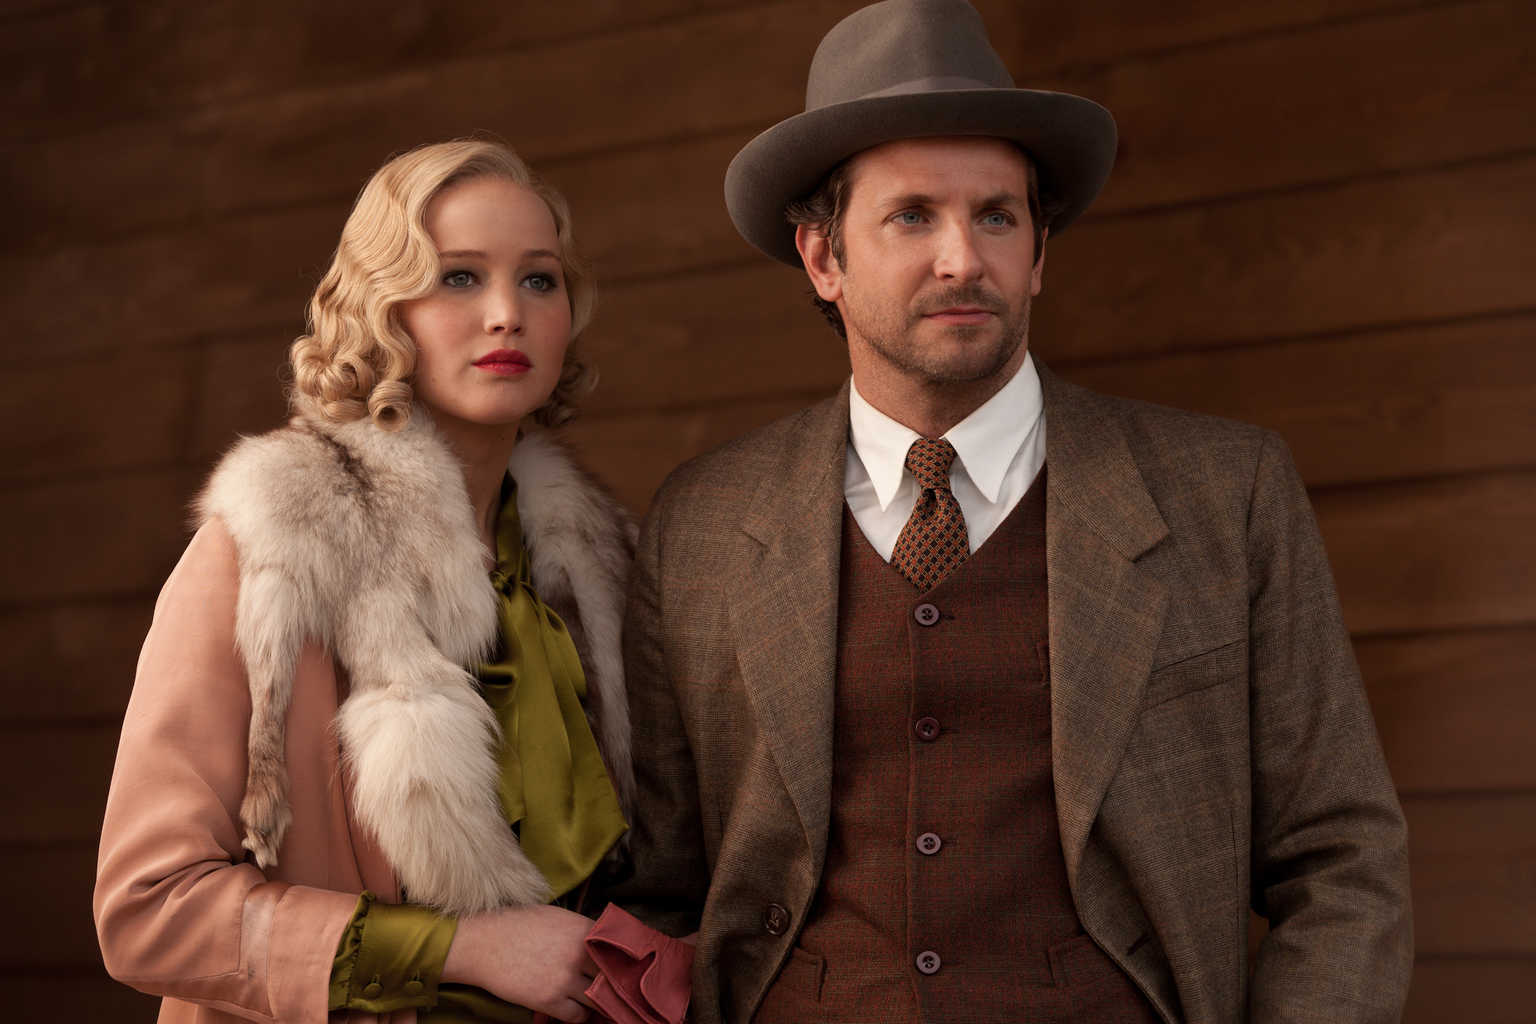 film reviews | movies | features | BRWC Review: Serena